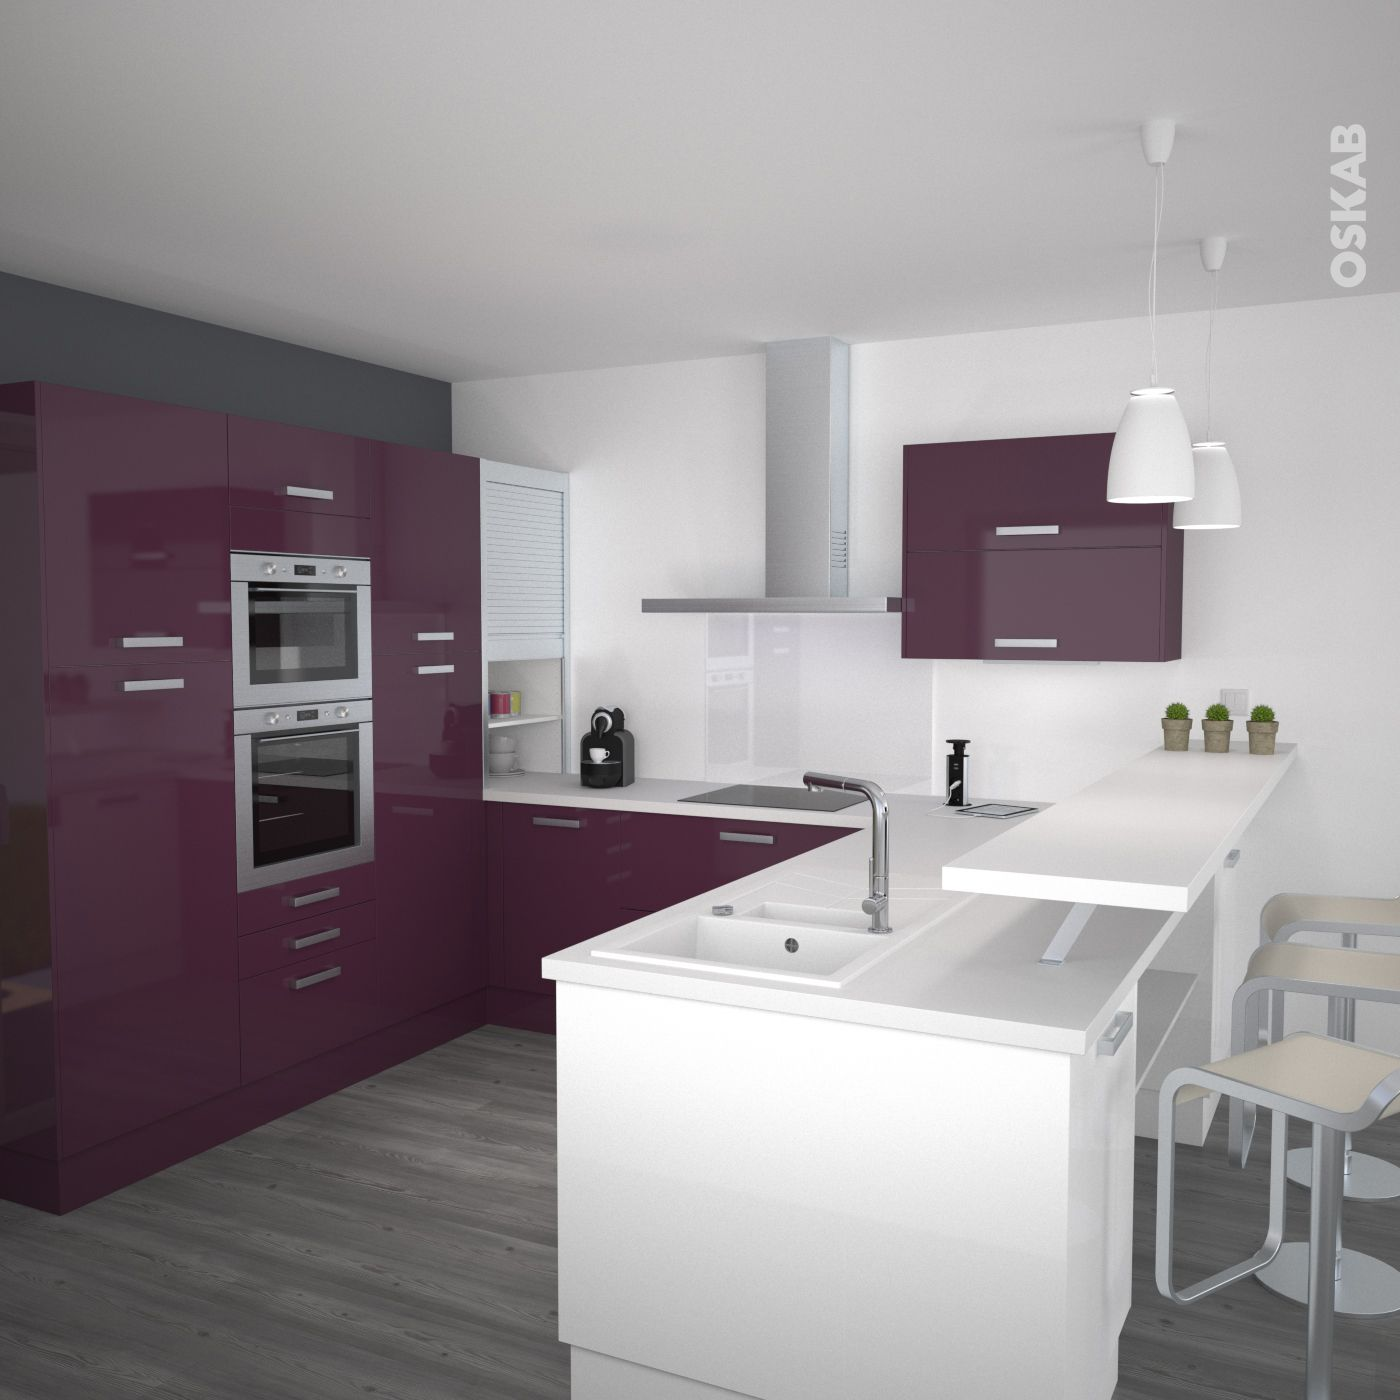 cuisine aubergine mod le keria aubergine brillant cuisine et collations. Black Bedroom Furniture Sets. Home Design Ideas